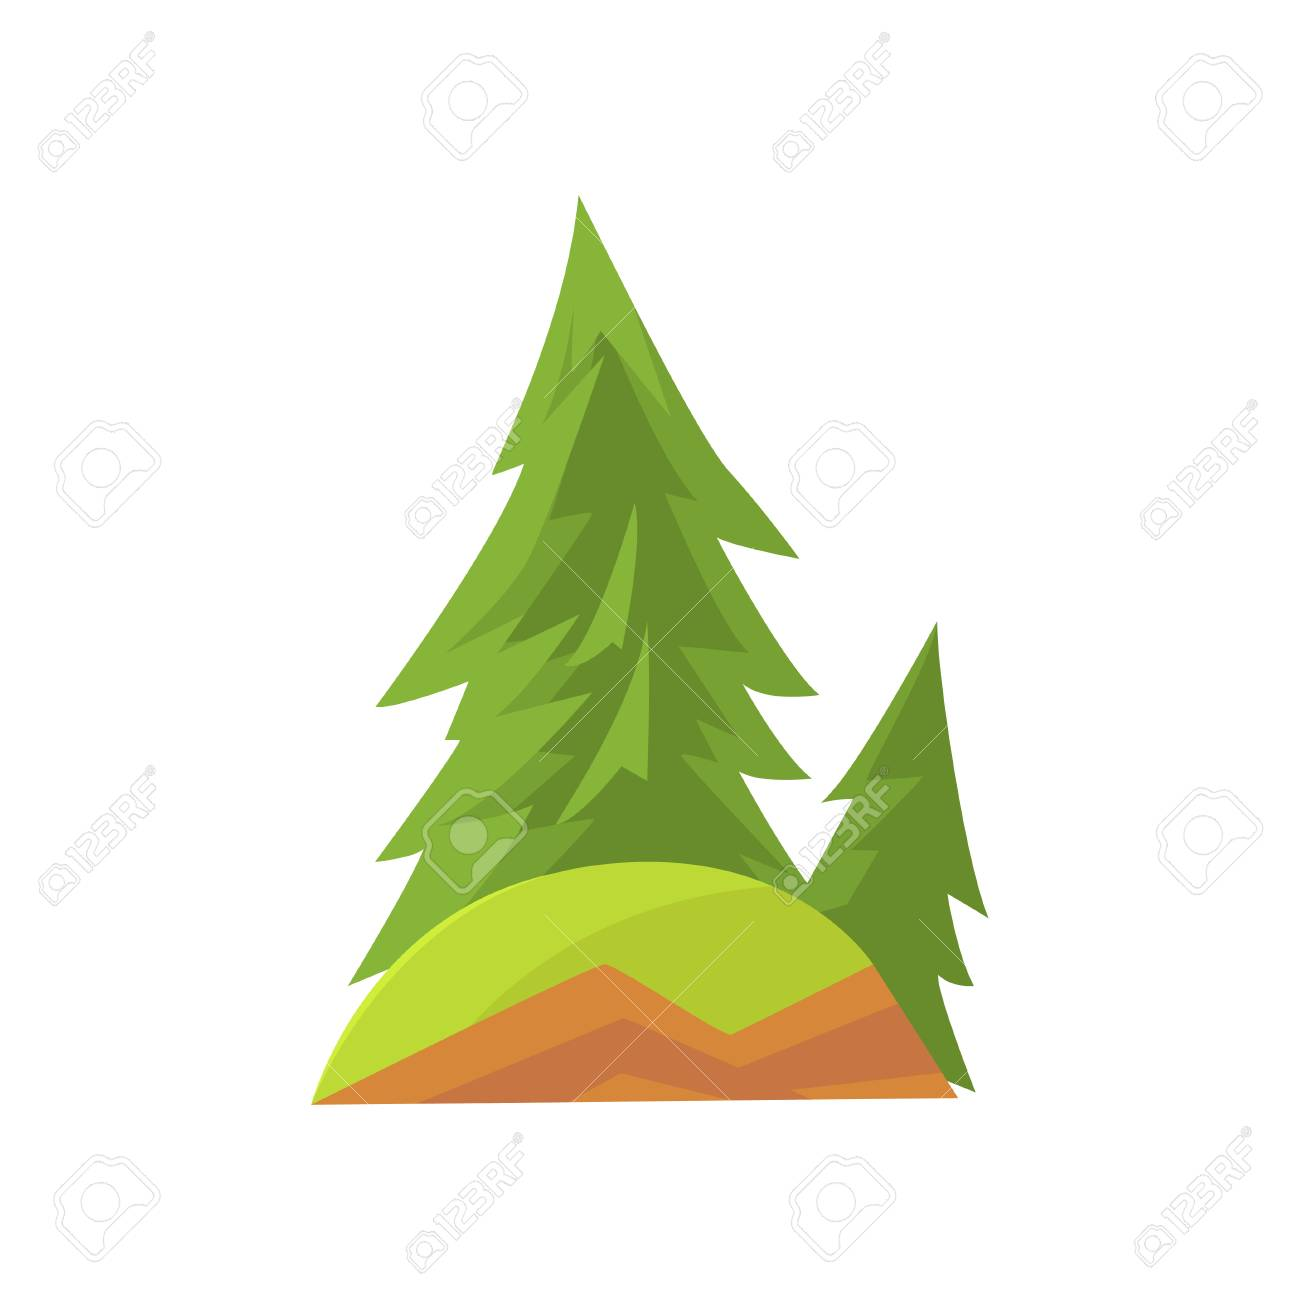 Evergreen Cut Out Vector Tree Illustration - World Wide Clip Art ...